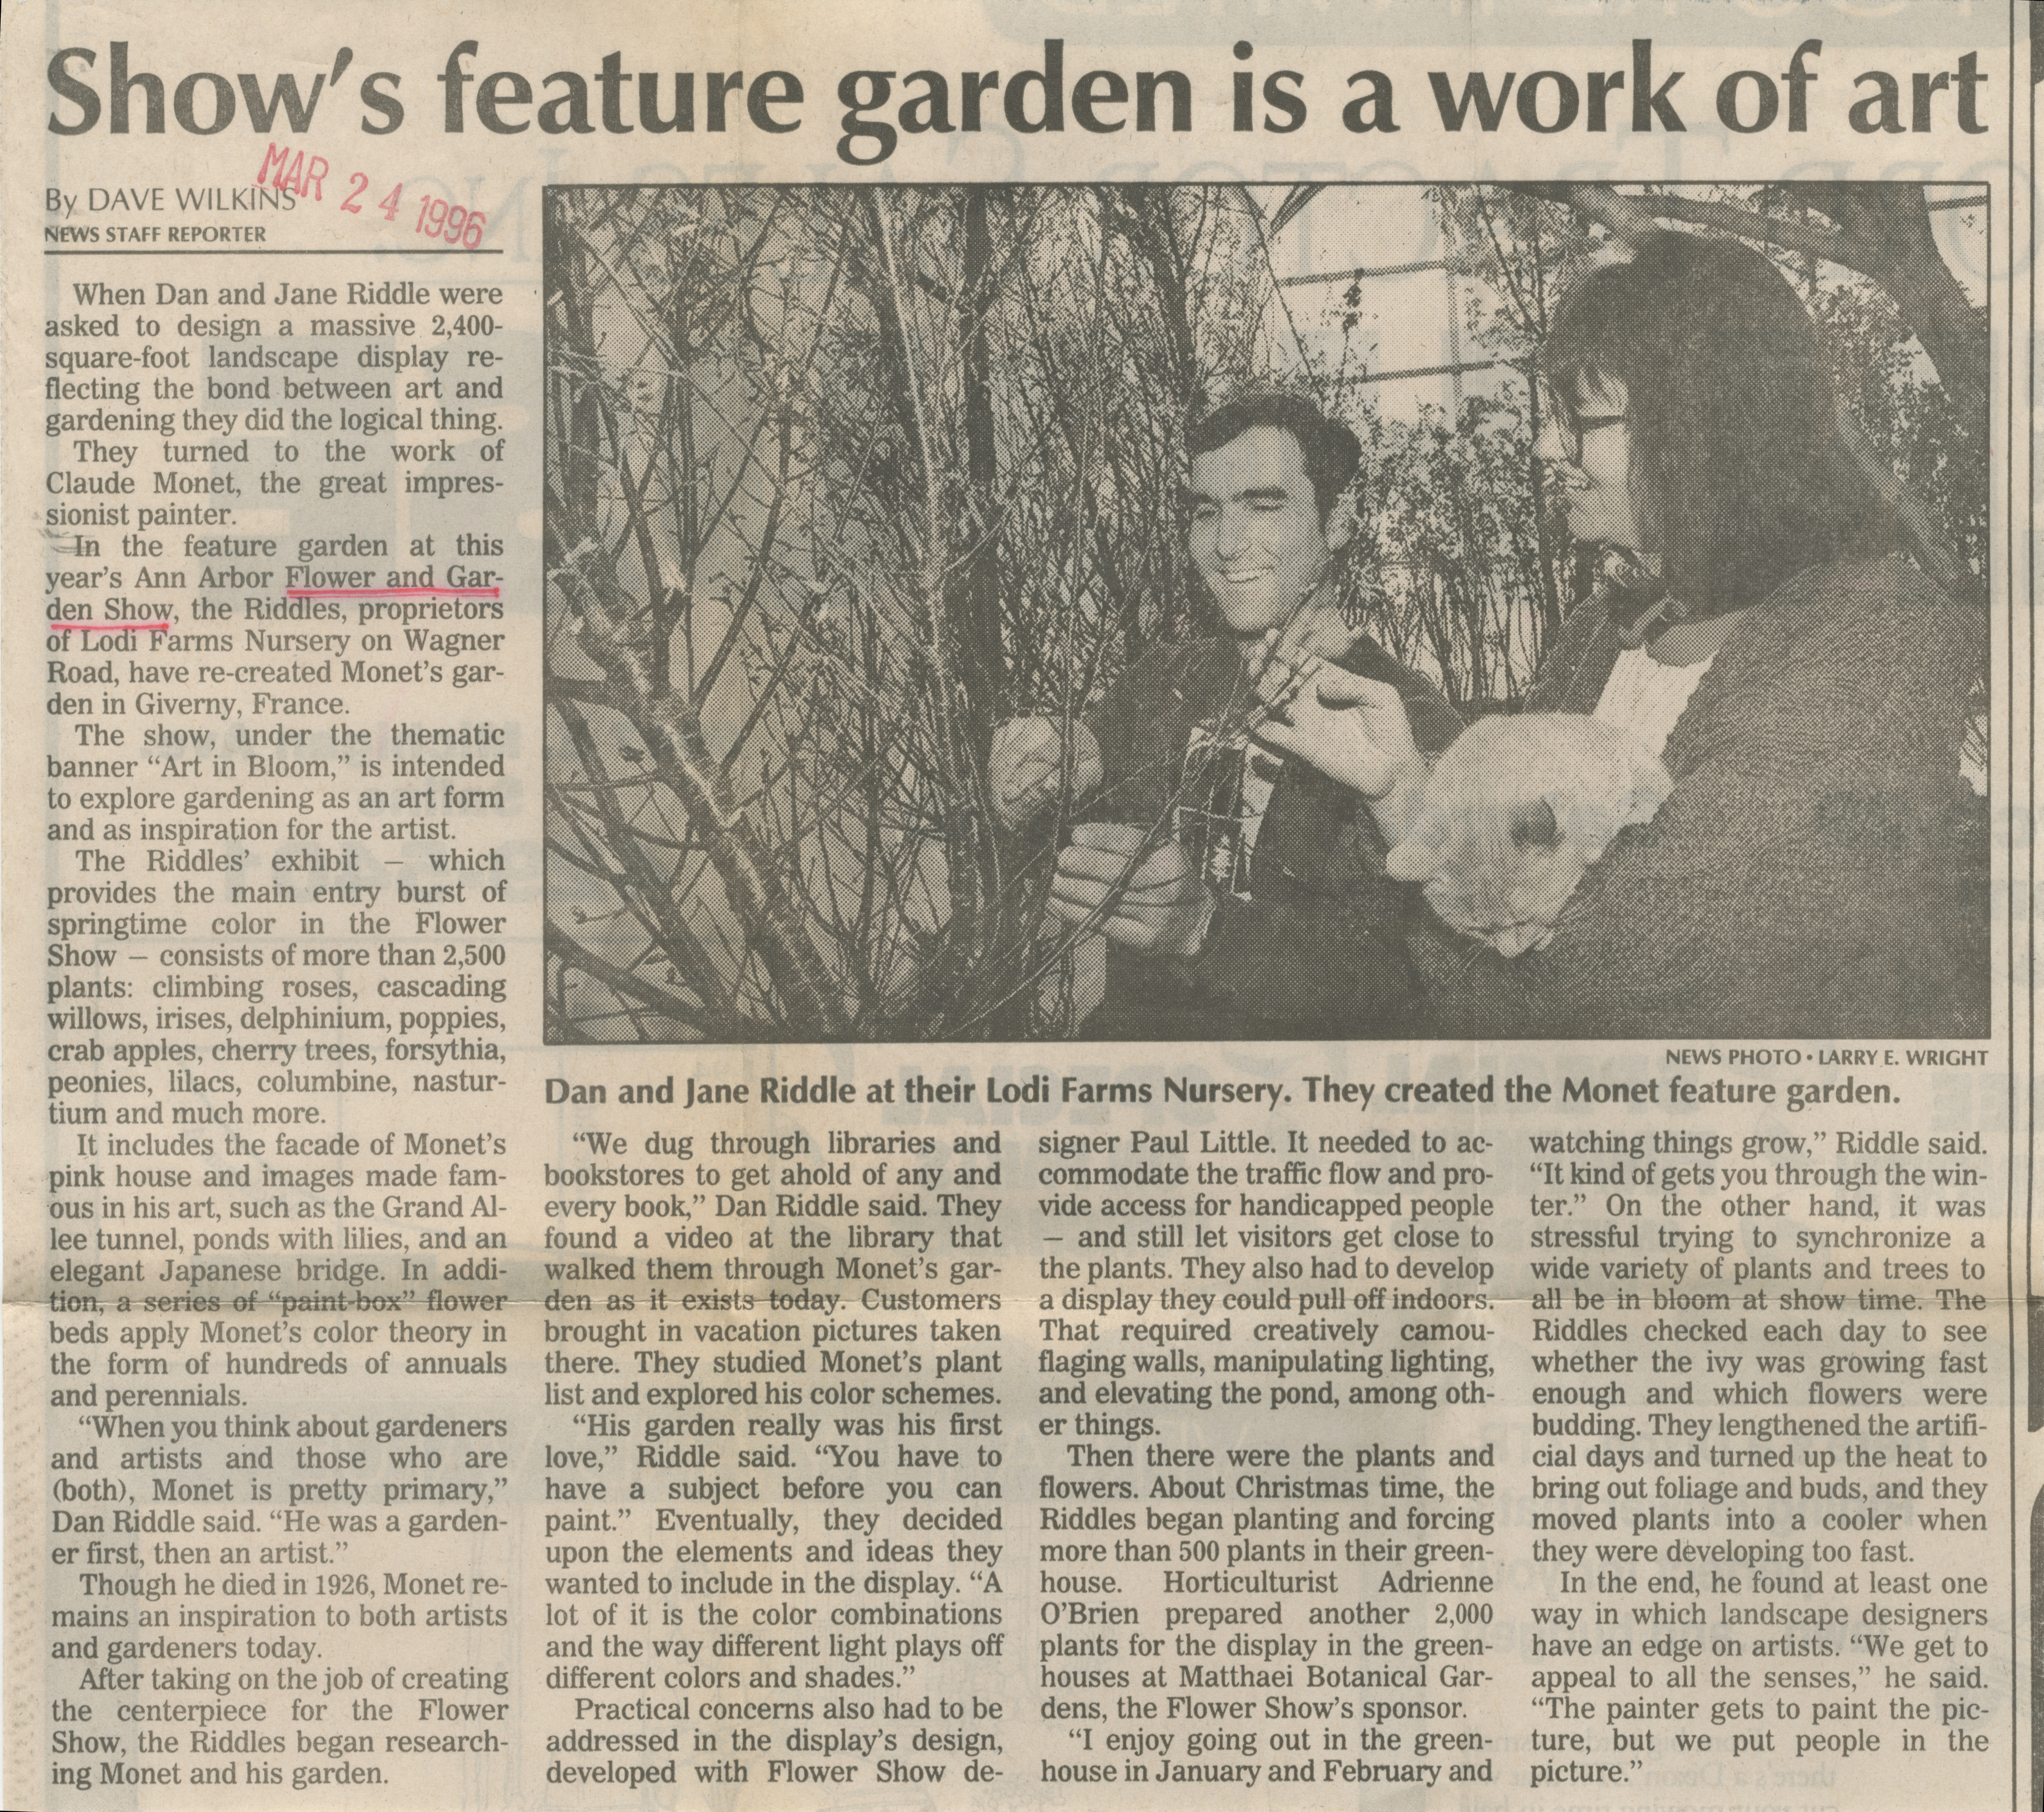 Show's Feature Garden Is A Work of Art image